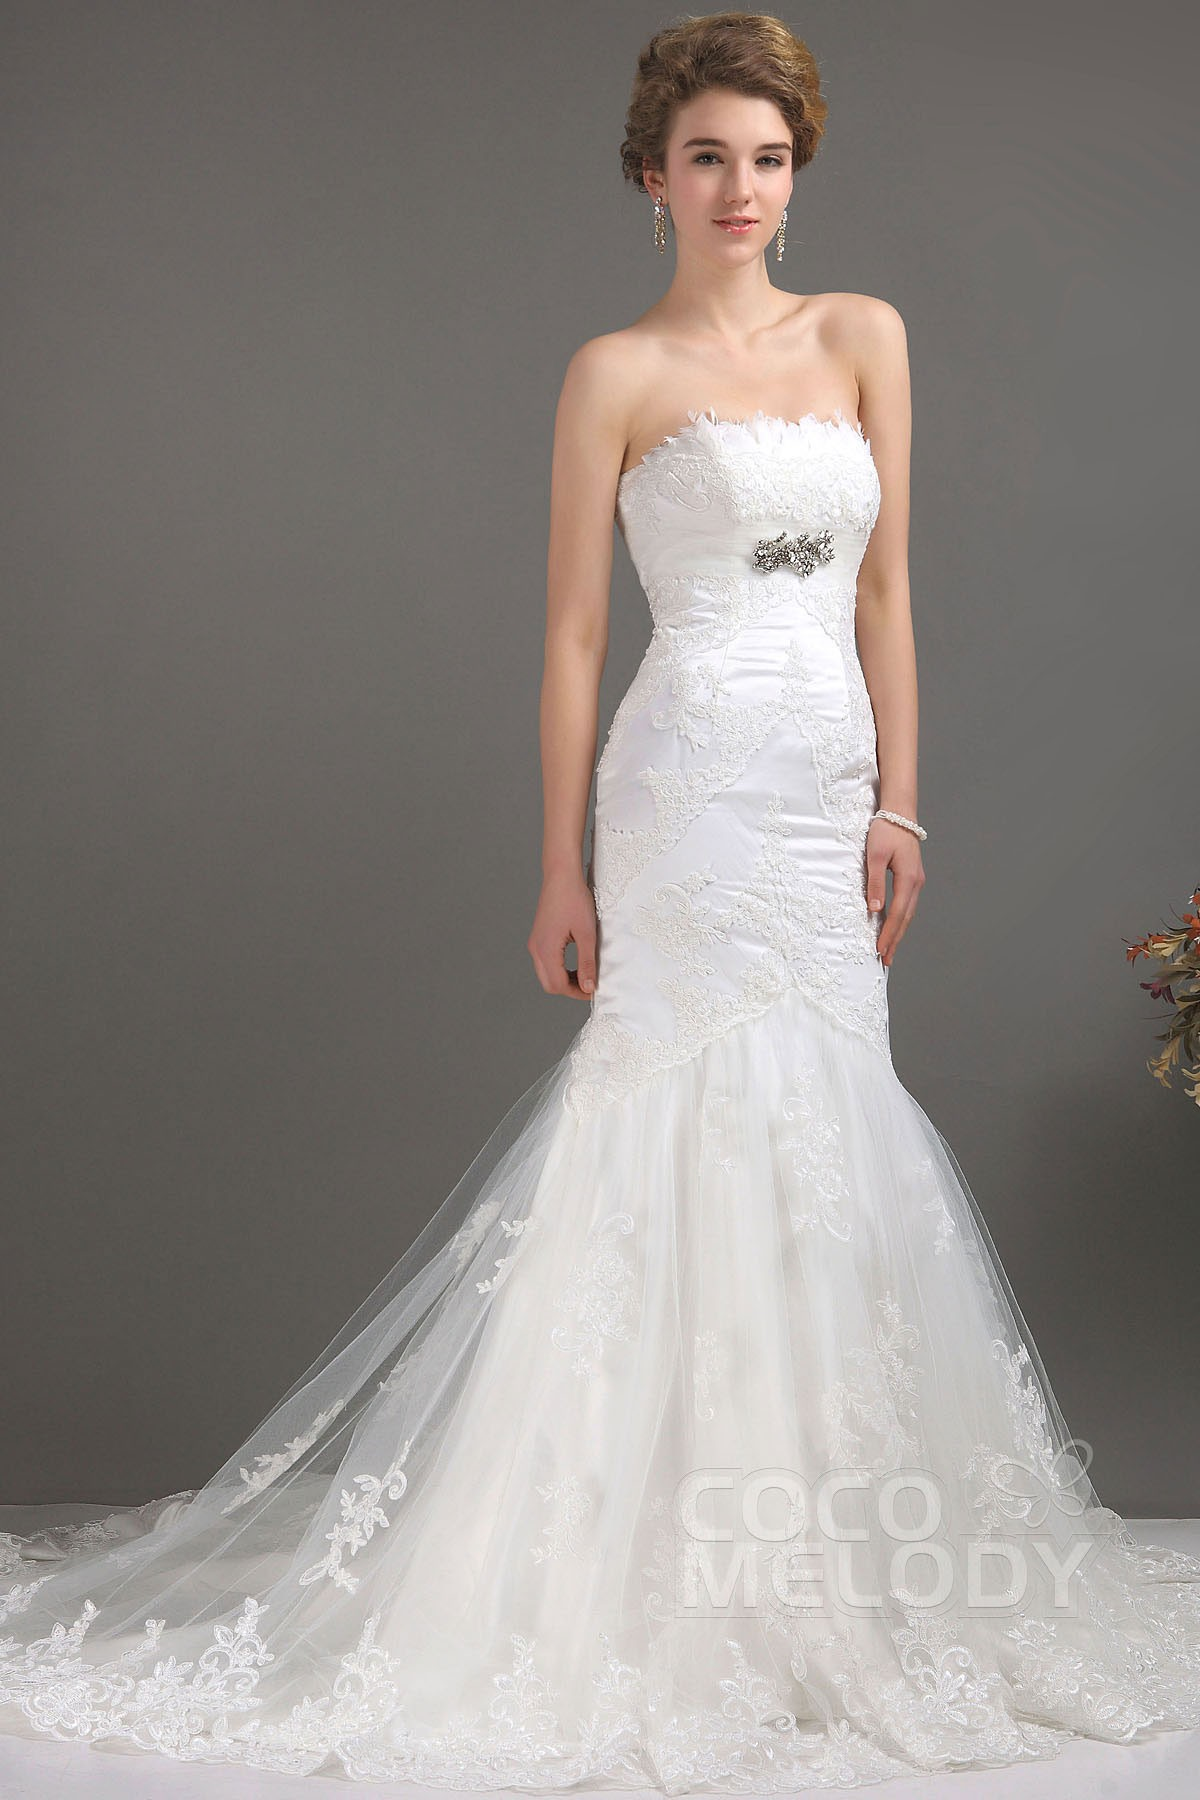 strapless mermaid wedding dresses cocomelody trumpet mermaid strapless court tulle 7720